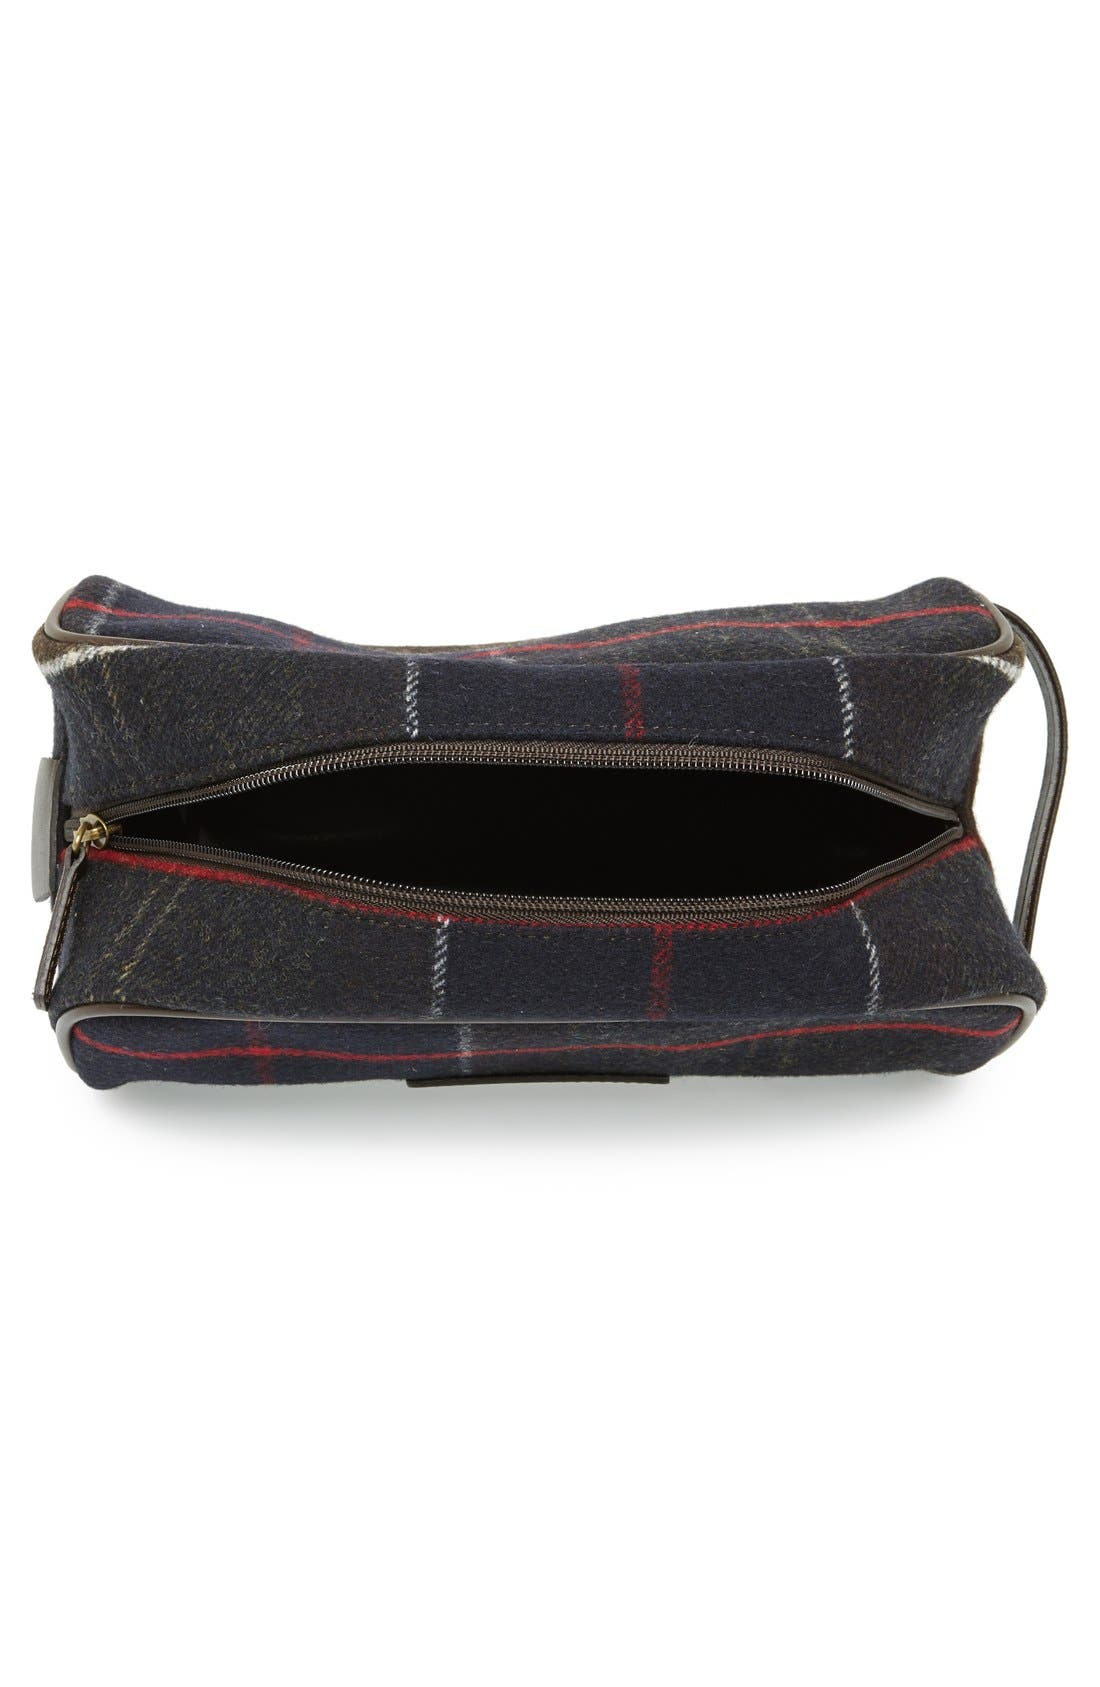 Tartan Dopp Kit,                             Alternate thumbnail 2, color,                             OLIVE/ BLUE/ RED